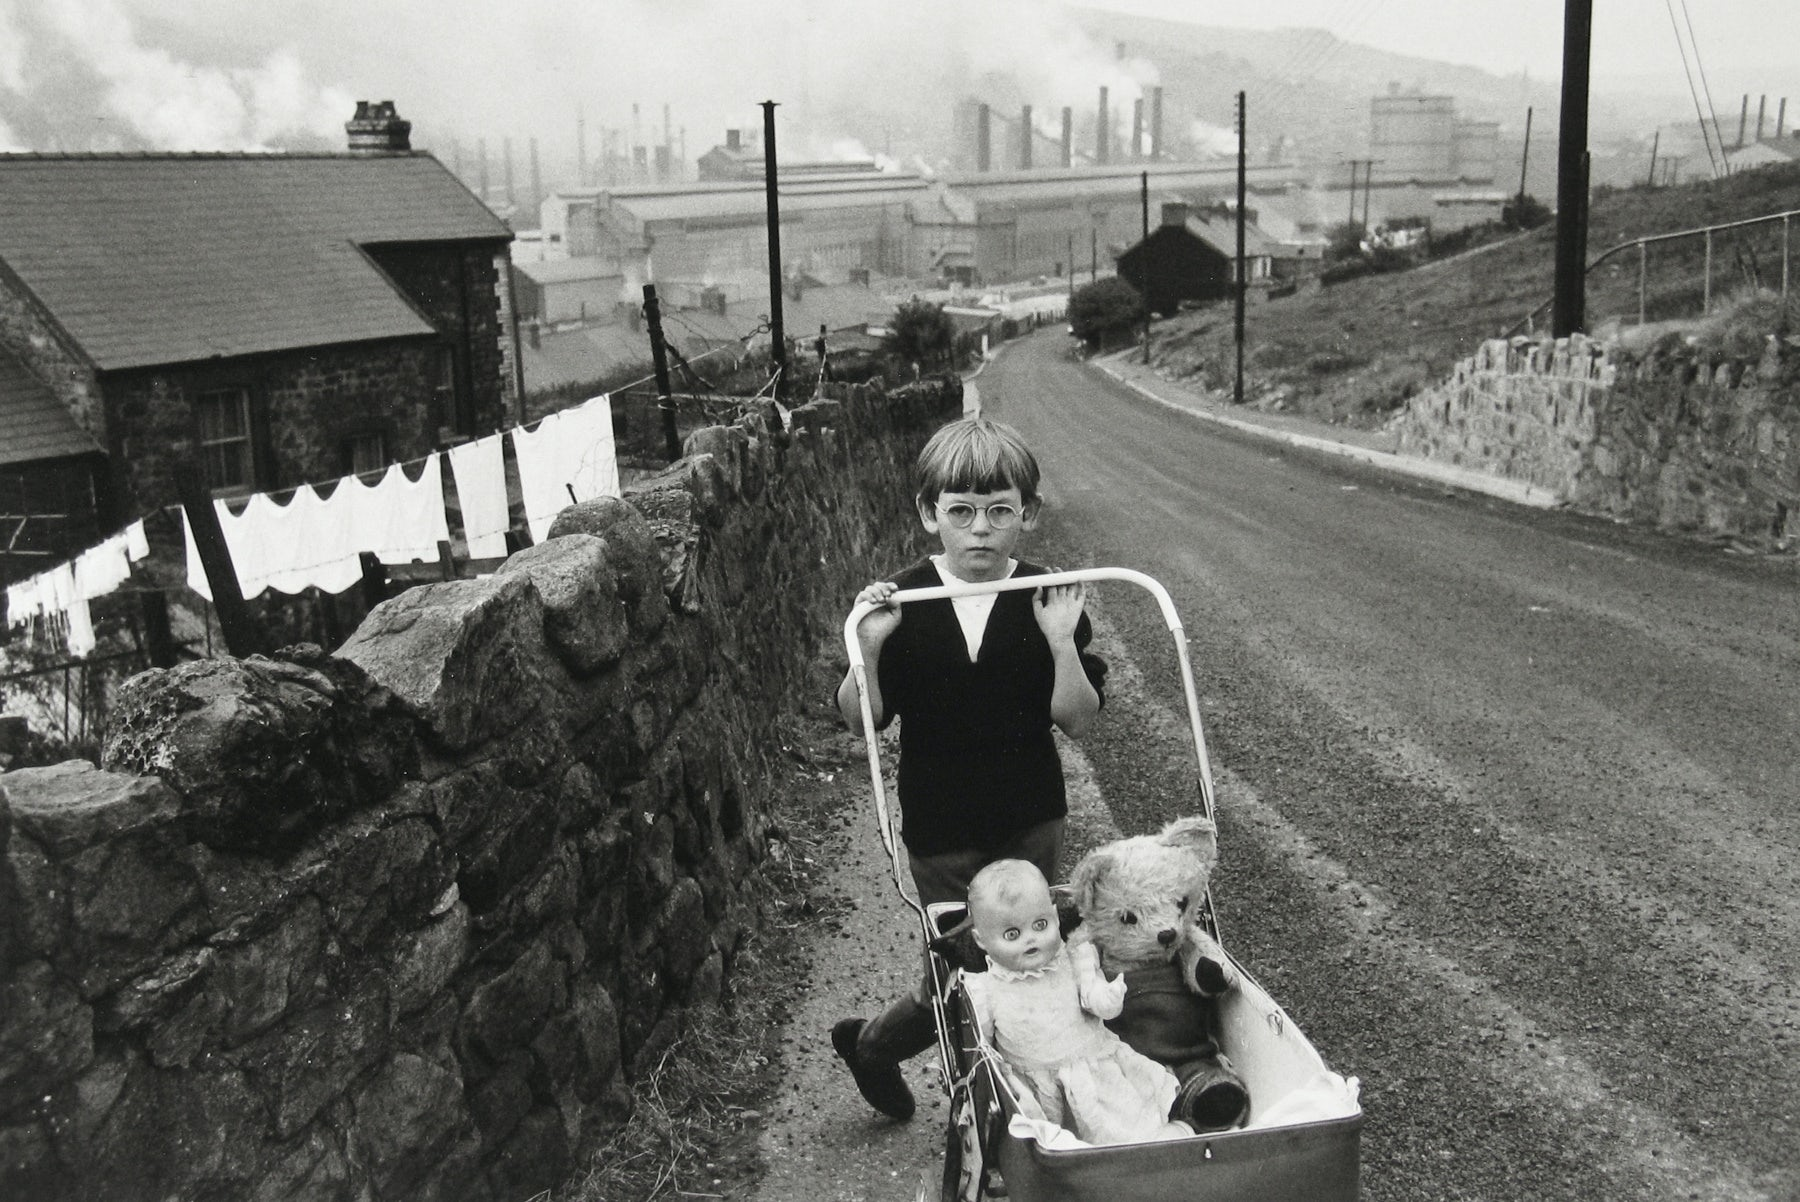 An iconic portrait taken in Wales and included in included in a new Bruce Davidson exhibition